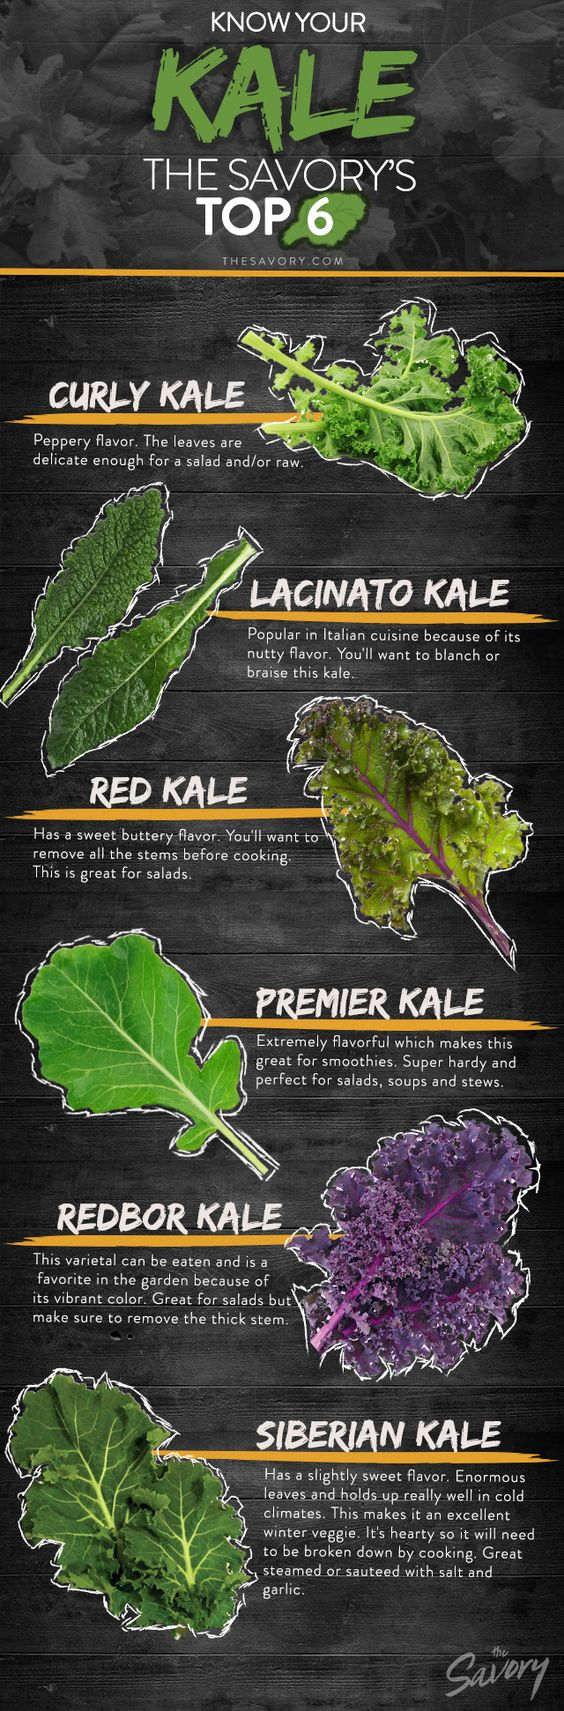 Image 1 1 - All You Need To Know About Kale Chips